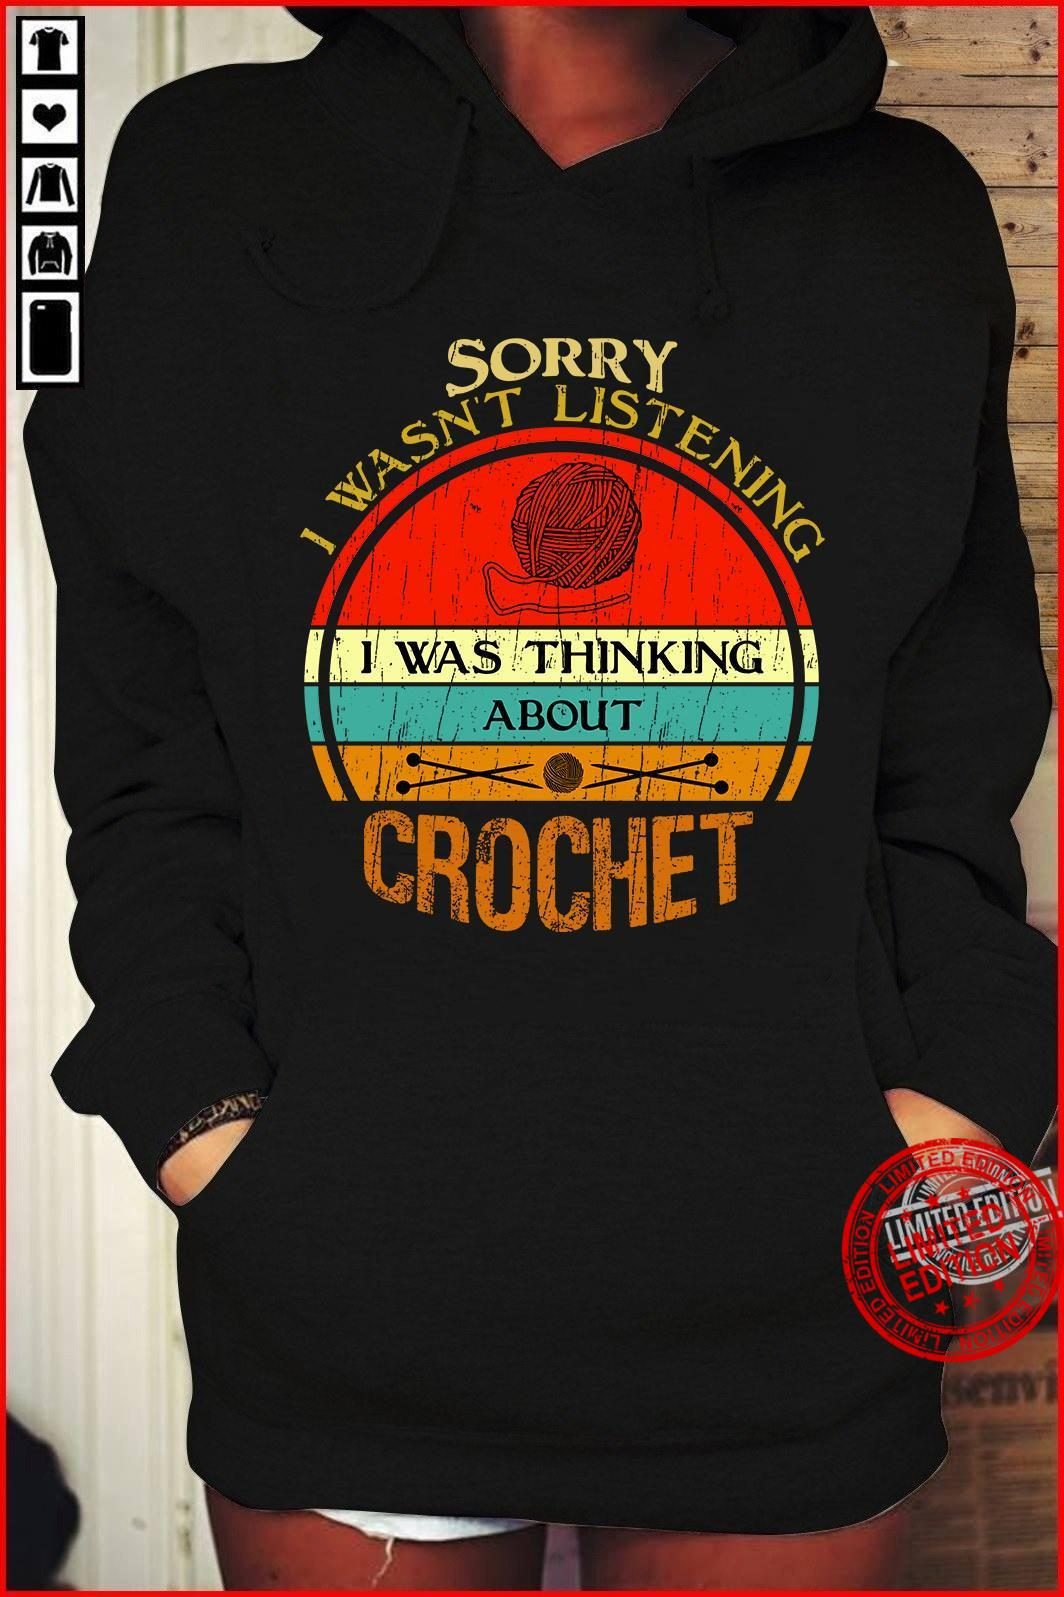 Sorry I Wasn't Listening I Was Thinking About Crochet Shirt